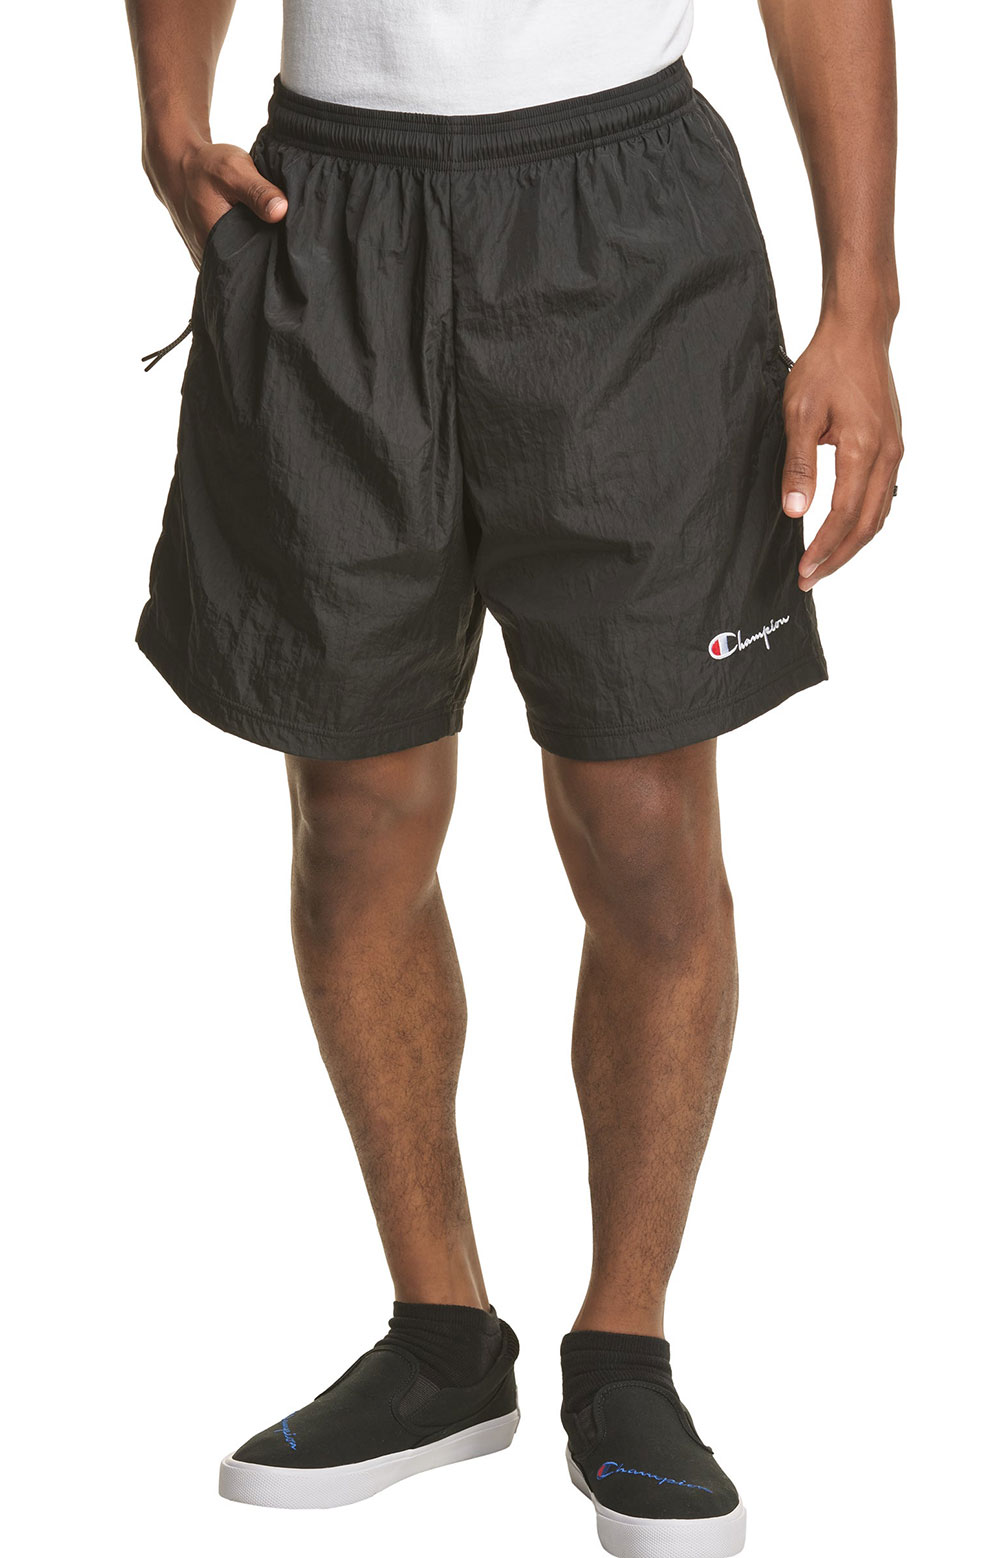 6-Inch Nylon Warm Up Shorts - Black 4